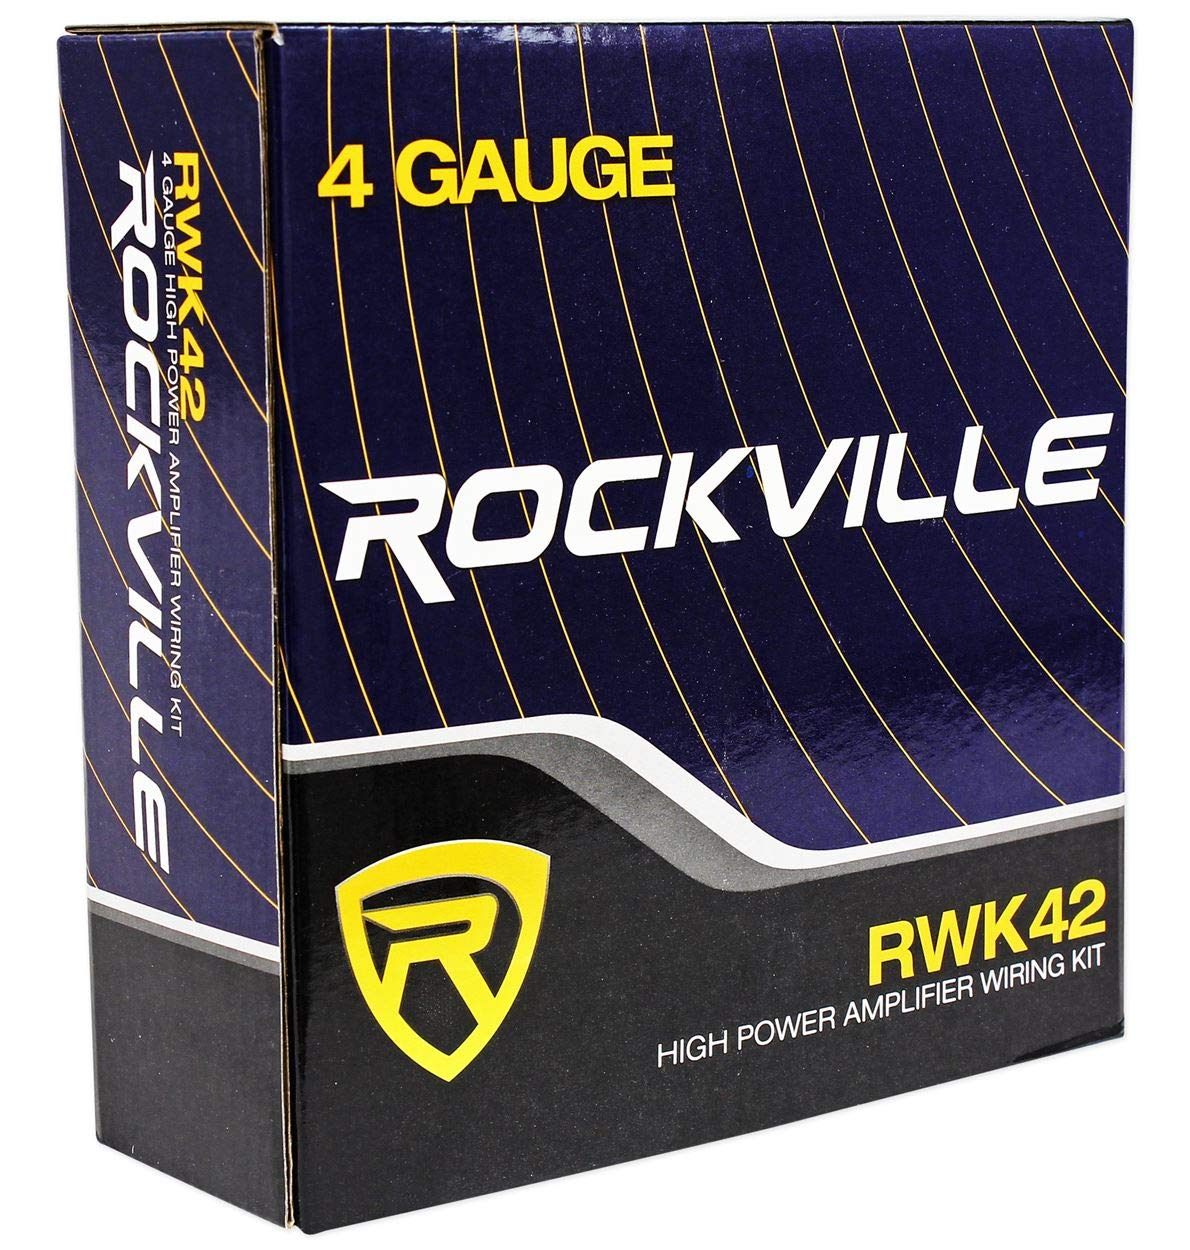 Rockville Rwk42 4 Gauge Chan Car Amp Wiring Complete 10 Awg Amplifier Wire Sub Subwoofer Kit Installation 2 Rcas Electronics